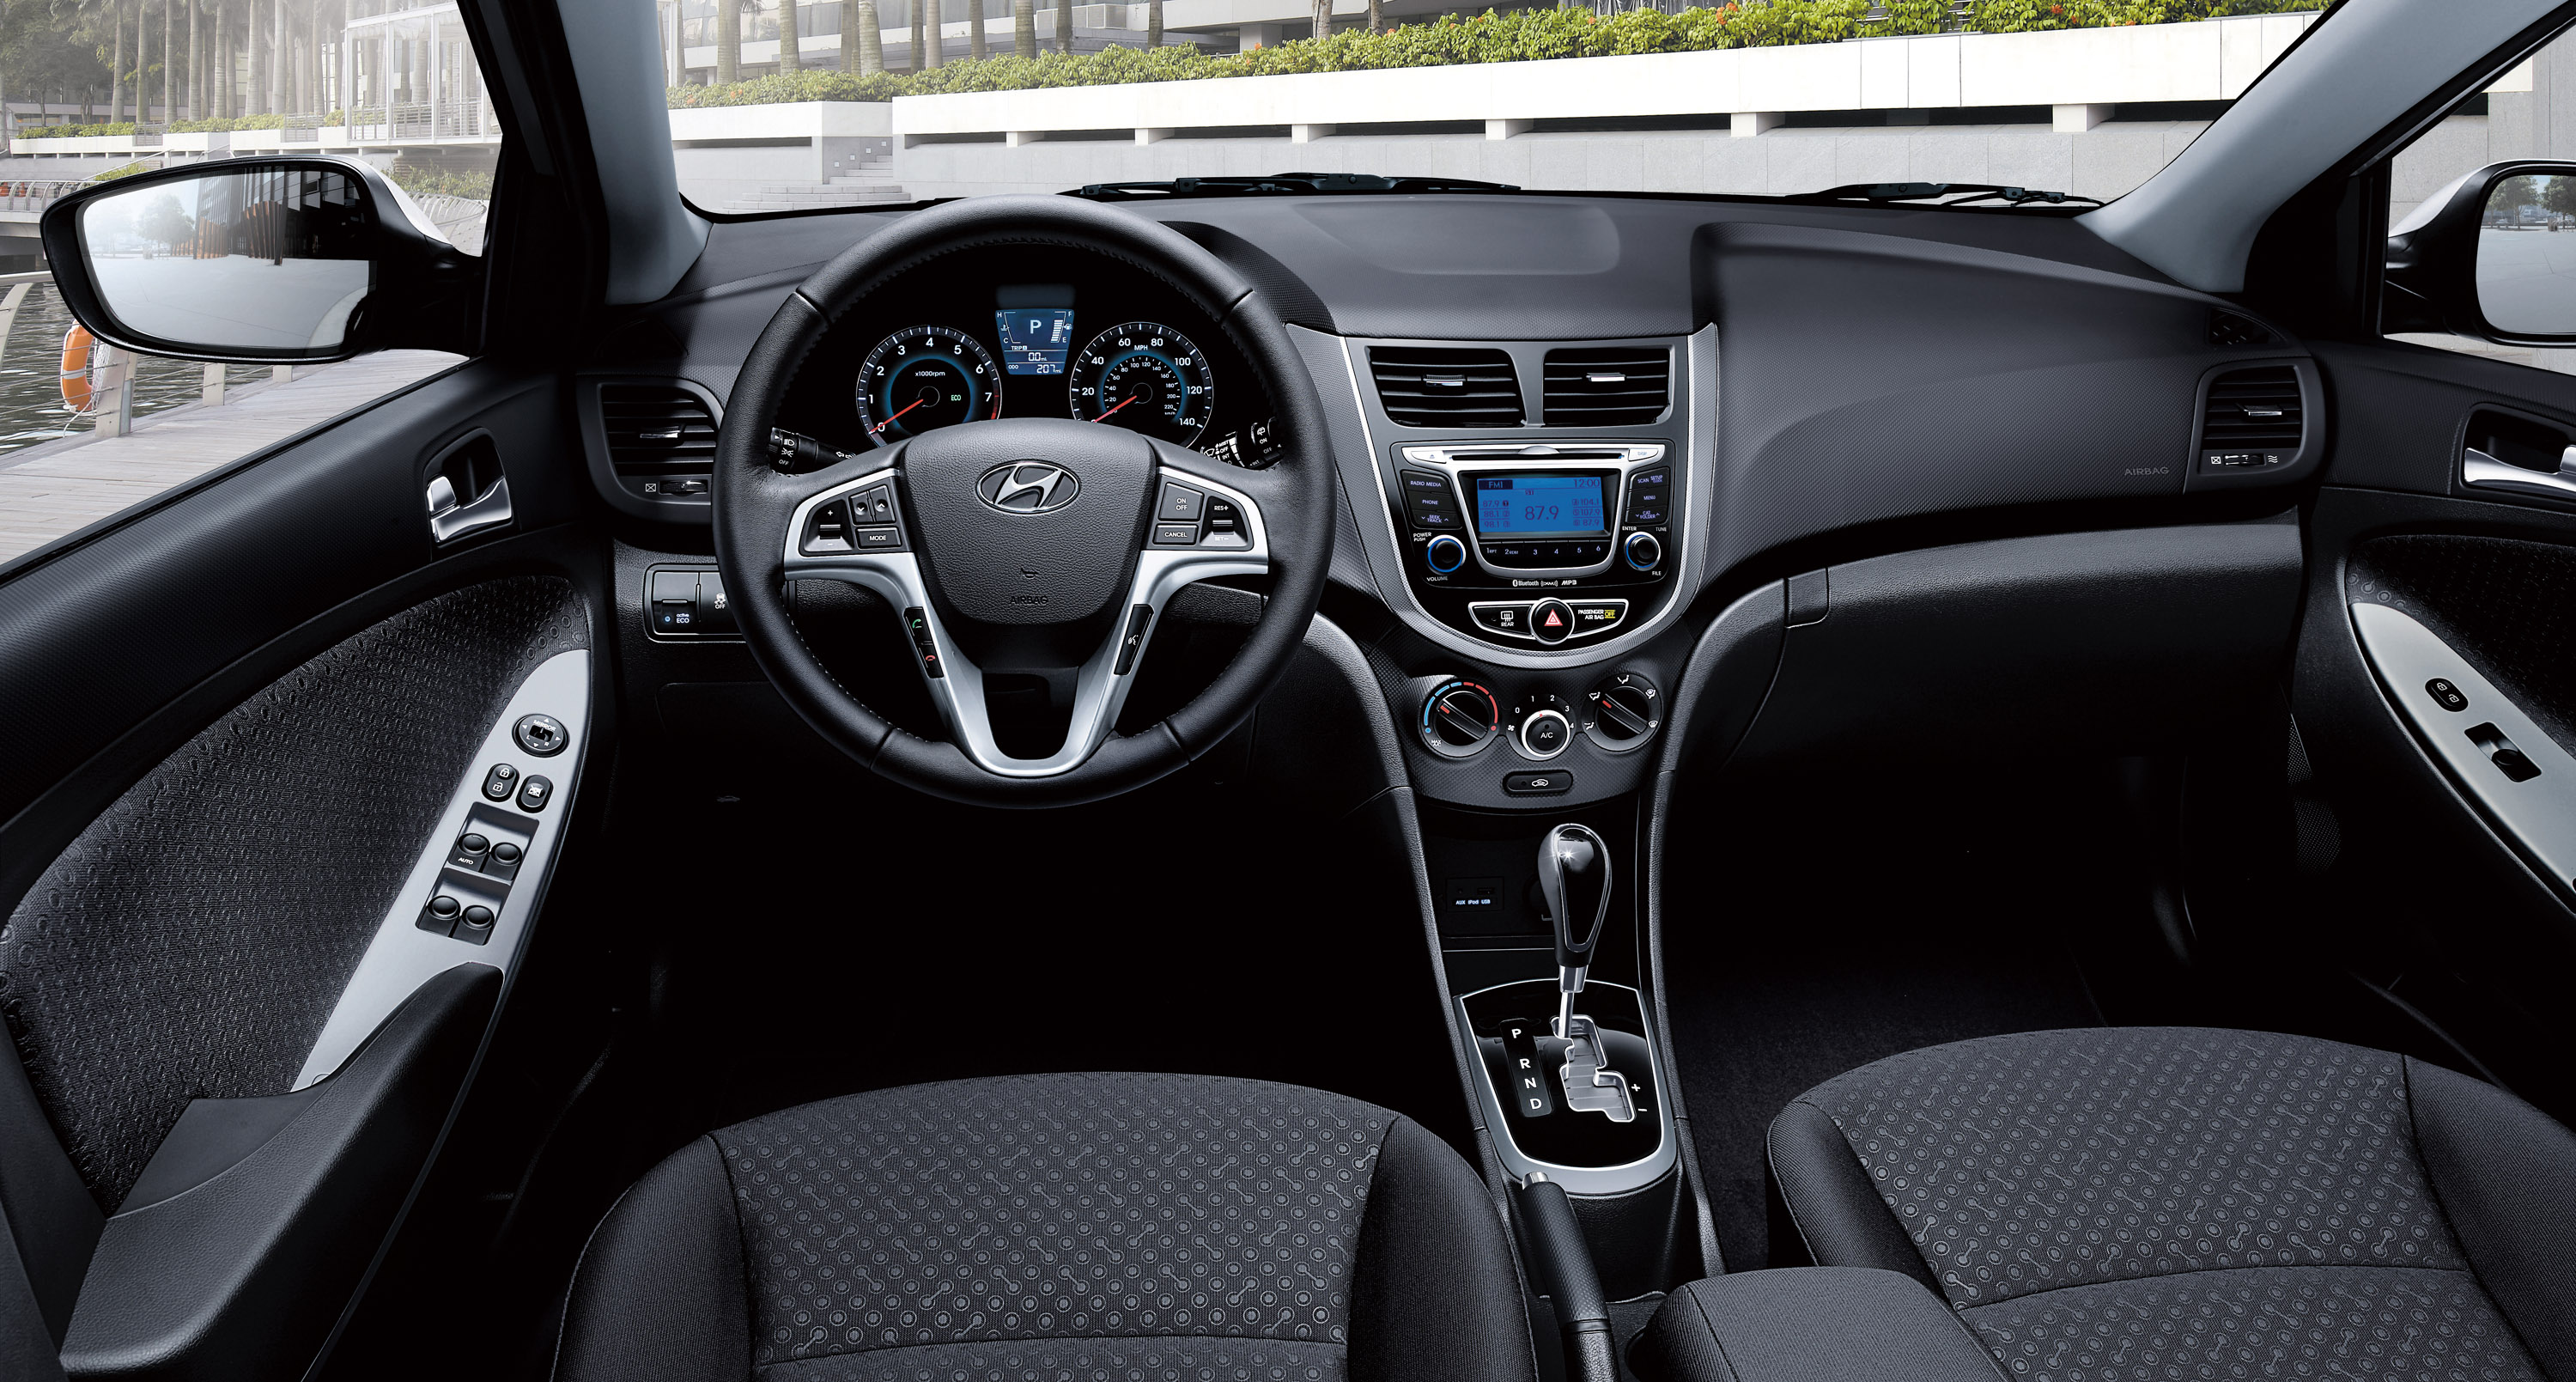 2014 Hyundai Accent Full Details